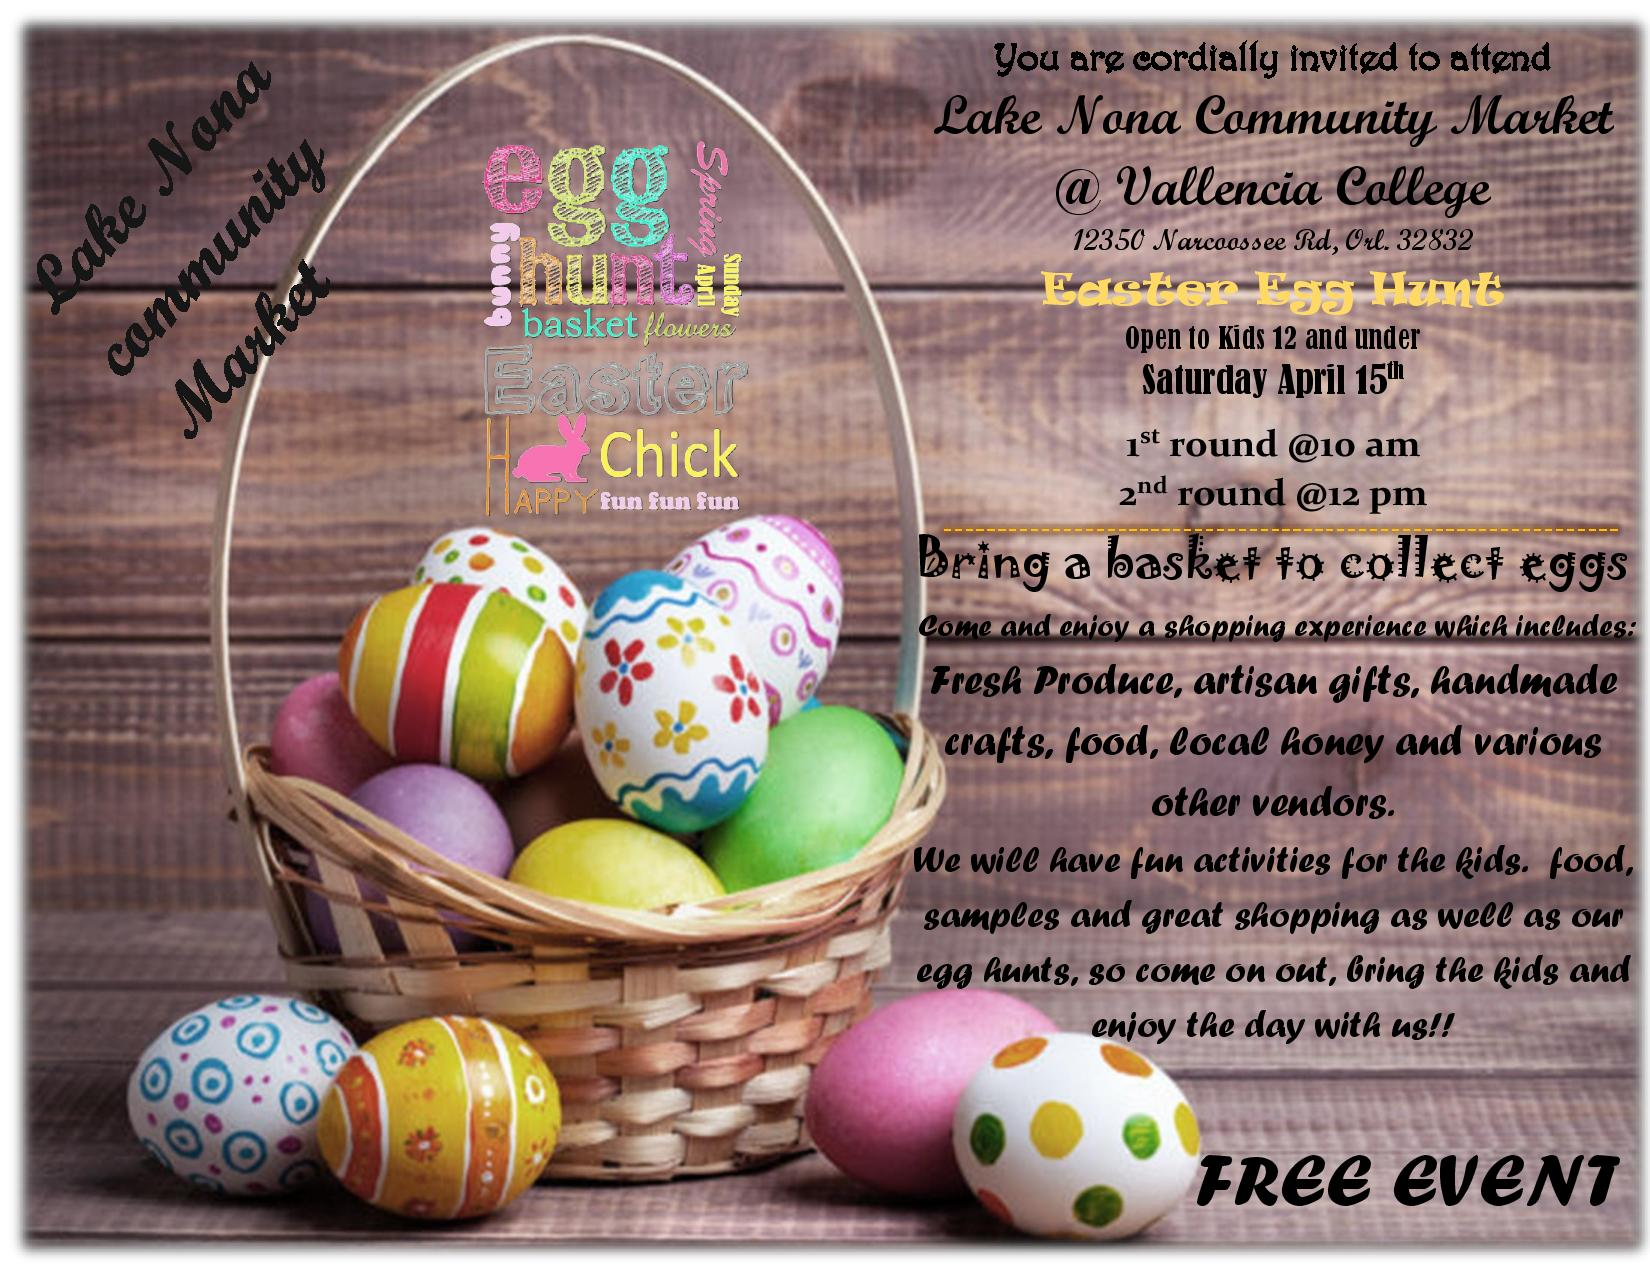 Free easter egg hunt nonahood news come and enjoy a shopping experience which includes fresh produce artisan gifts handmade crafts food local honey and more we will have fun activities negle Choice Image